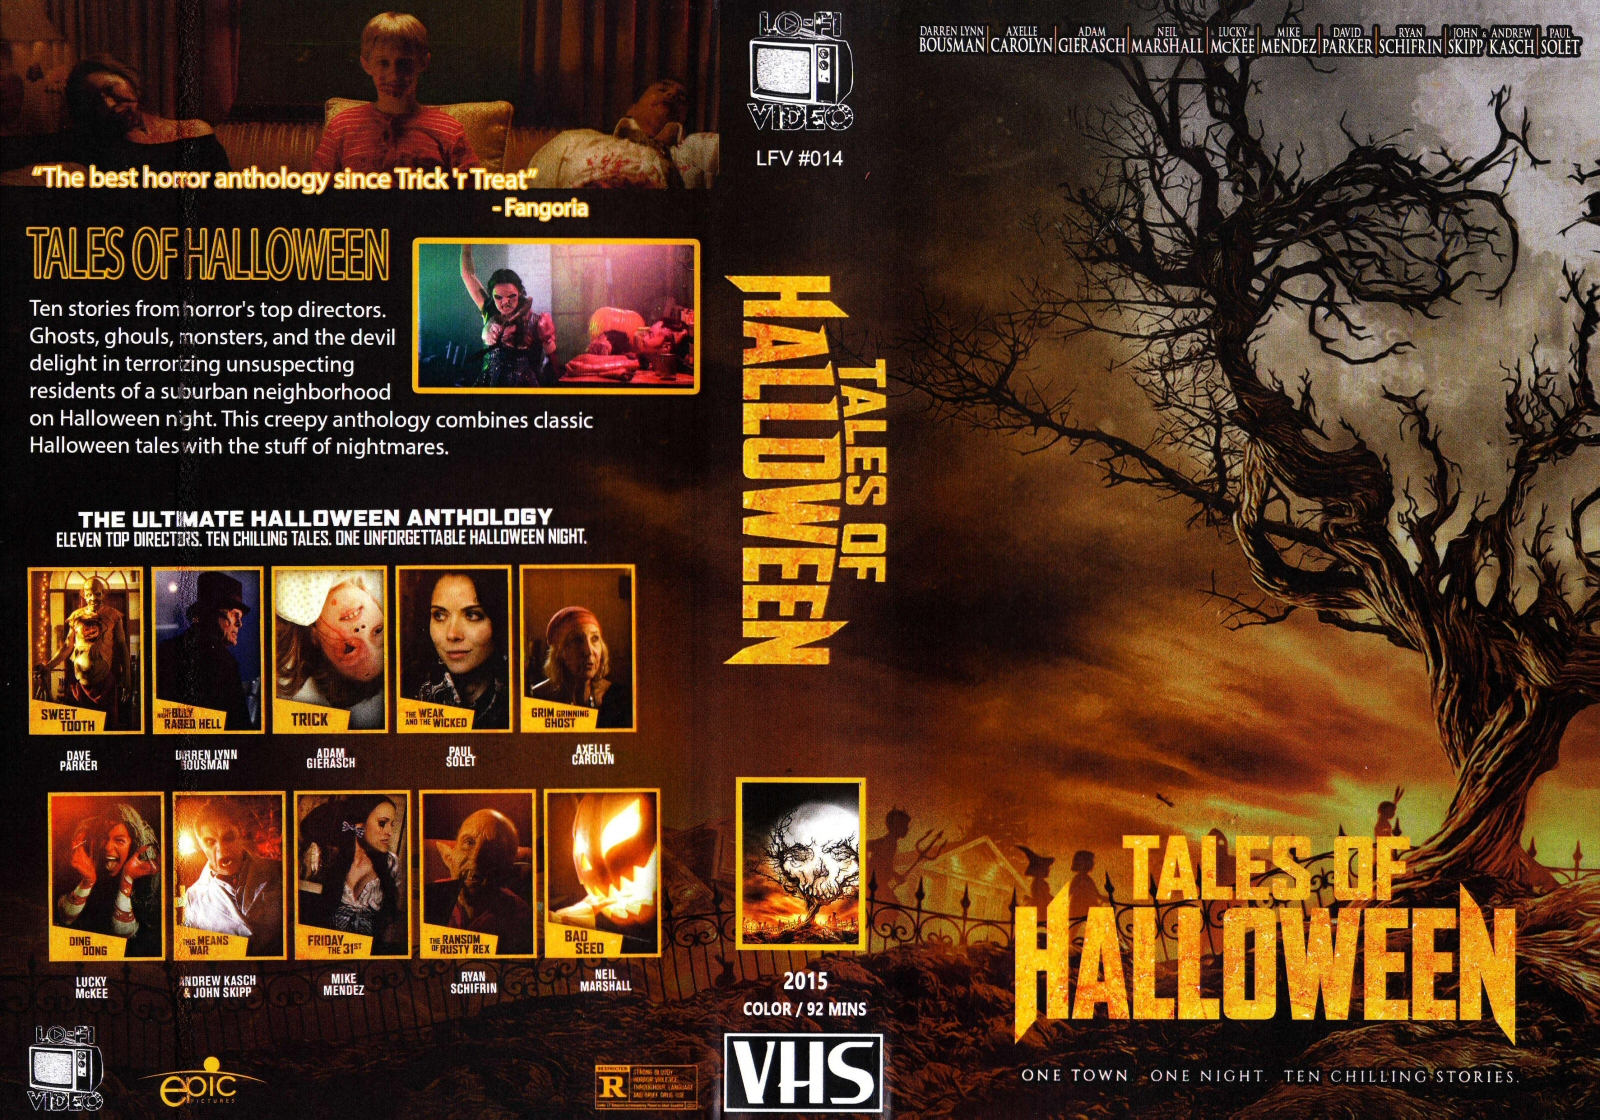 2020 Vhs Halloween The Horrors of Halloween: TALES OF HALLOWEEN (2015) Sales Sheet